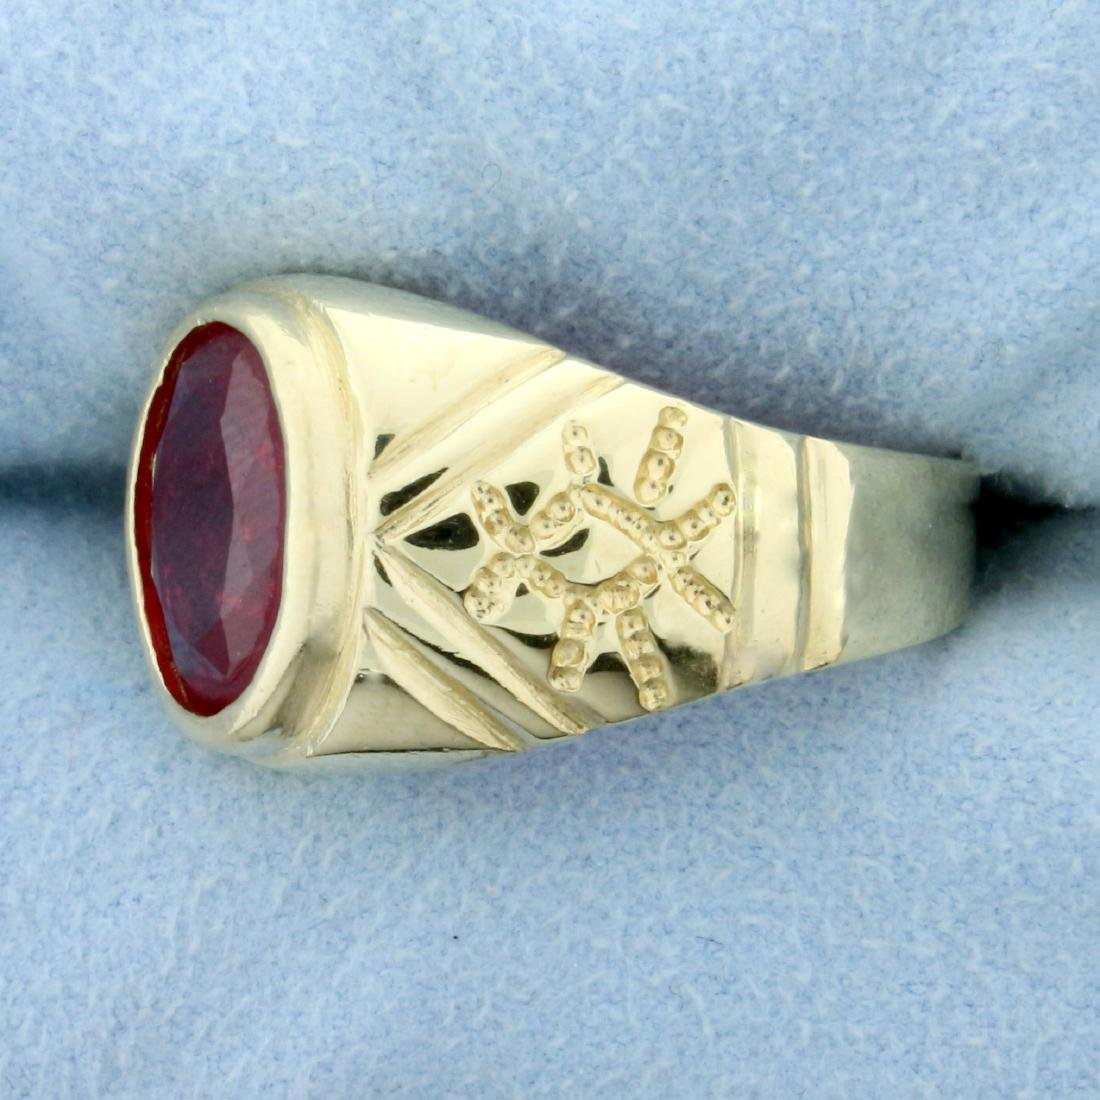 5ct Ruby Solitaire Ring in 14K Yellow Gold - 2